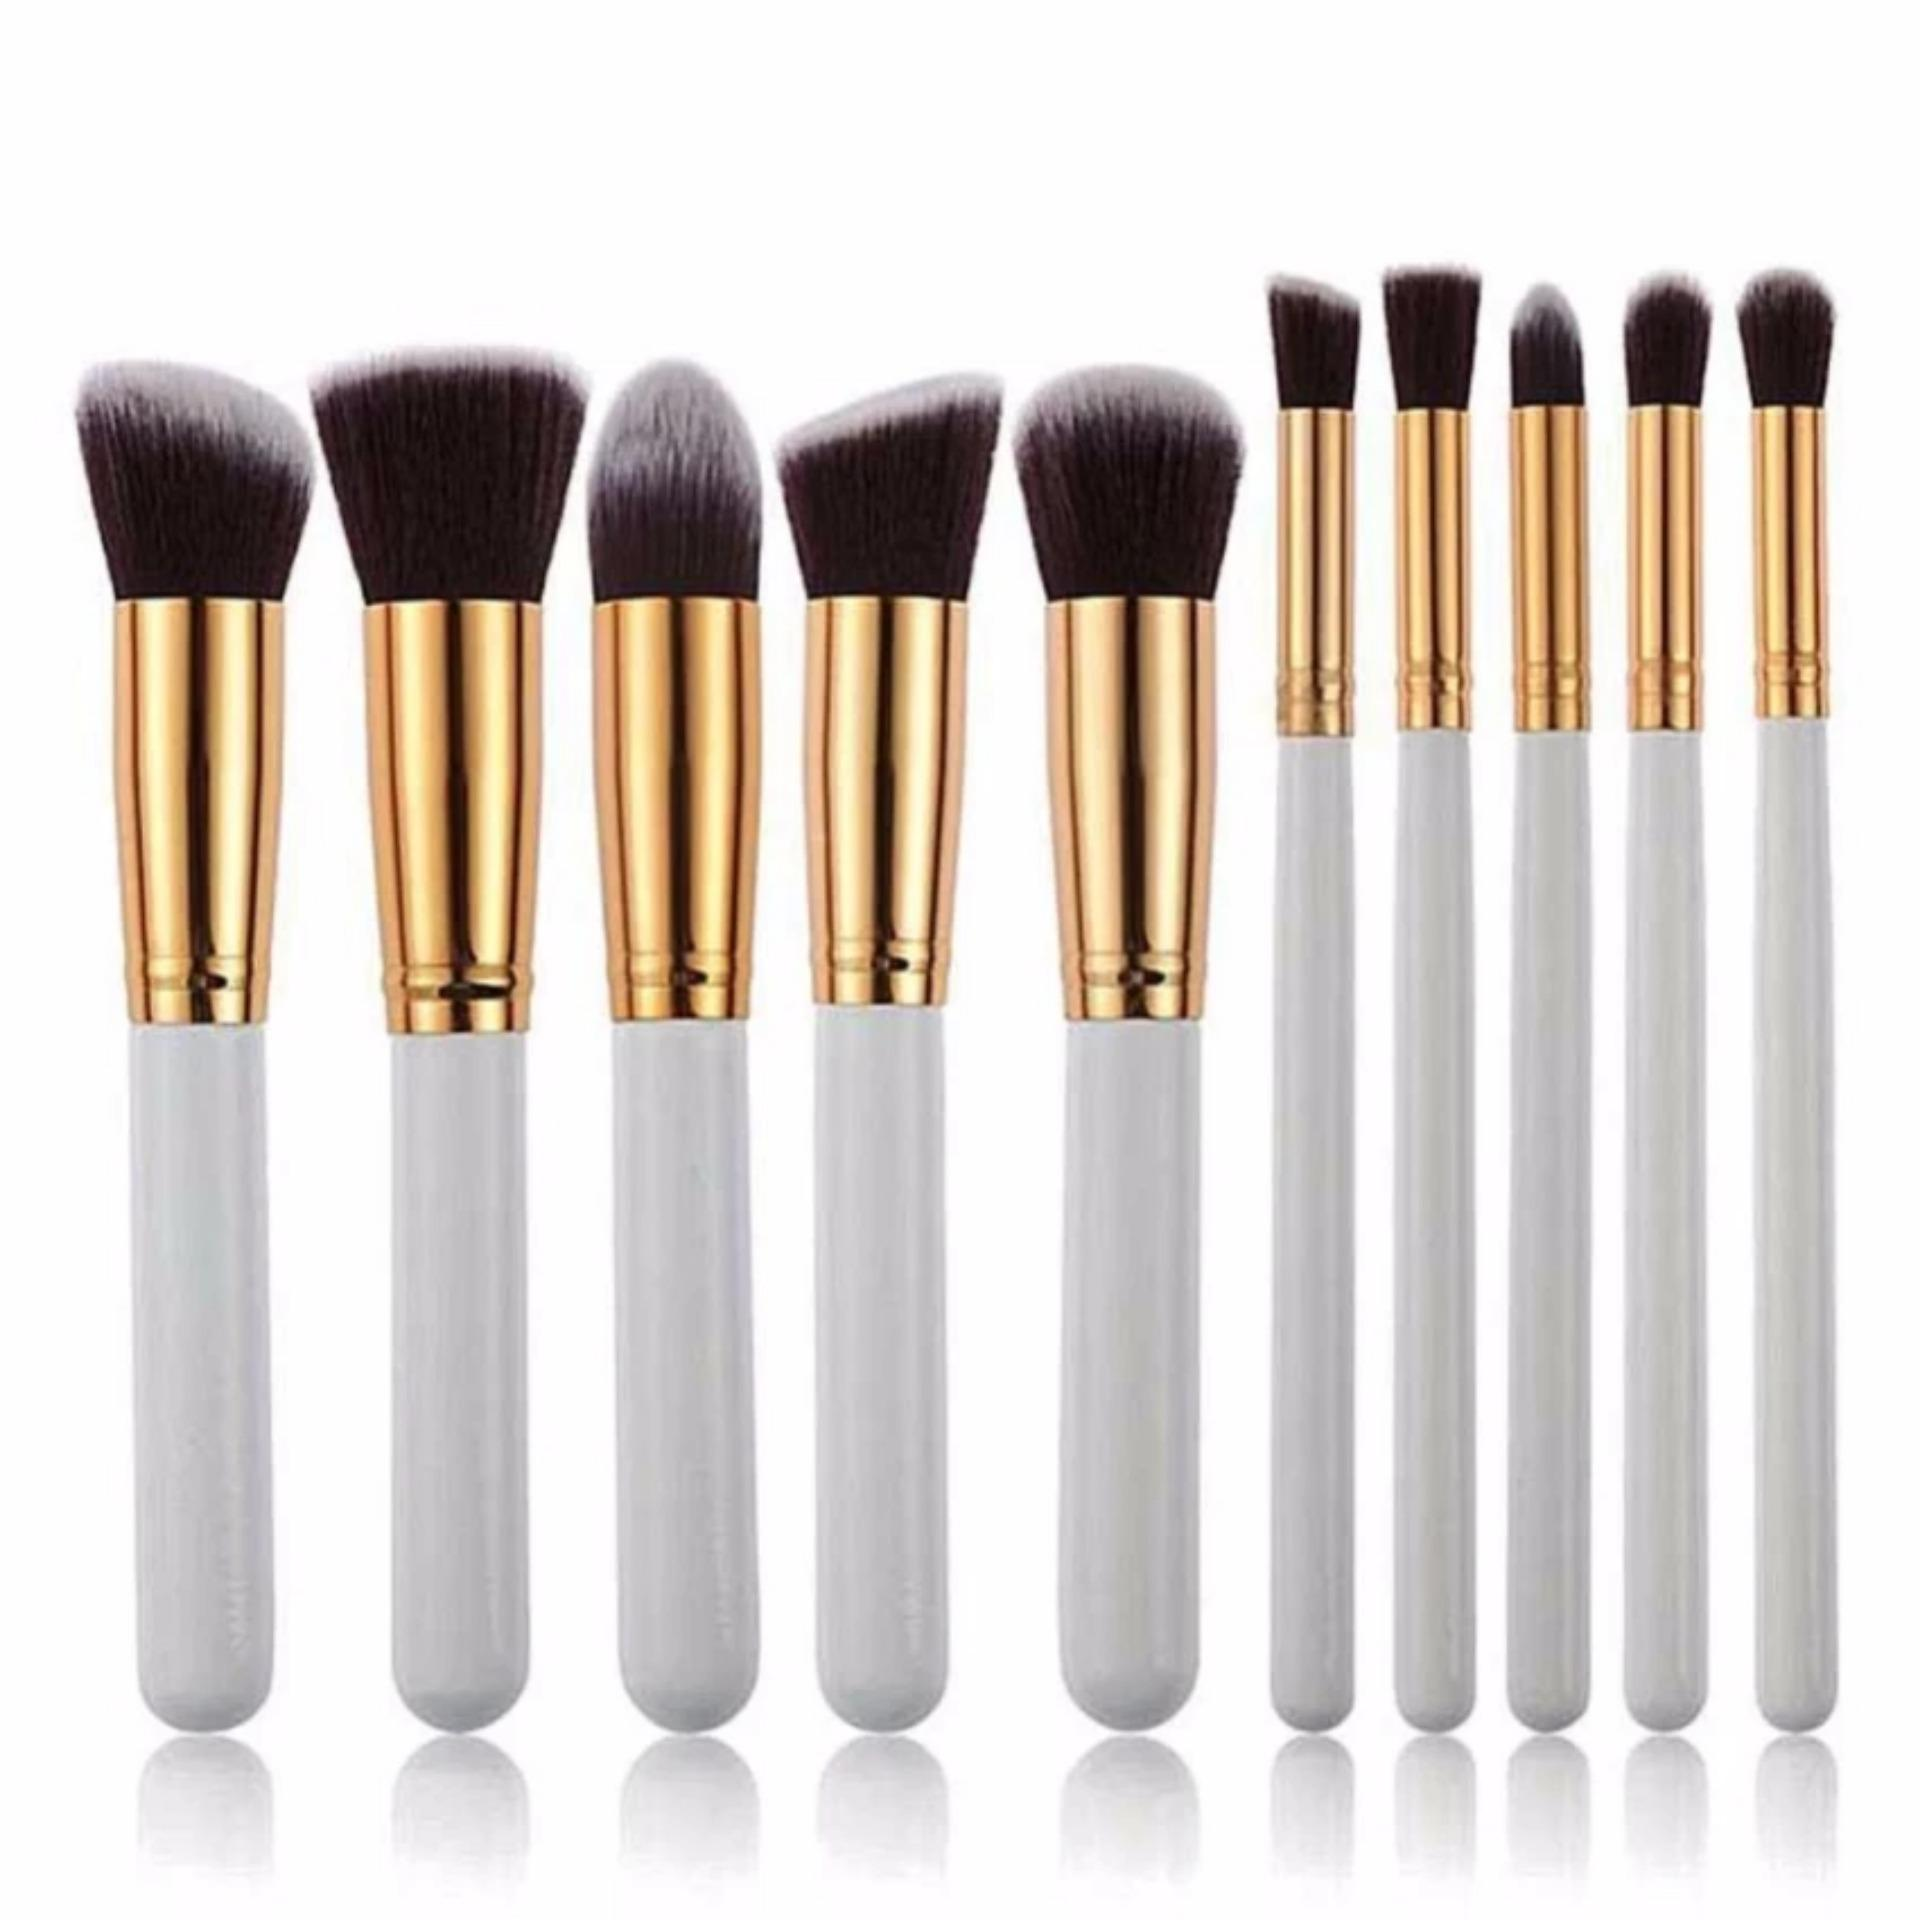 Diskon Kuas Make Up Makeup Brush Putih Set 10 Pcs Jawa Barat